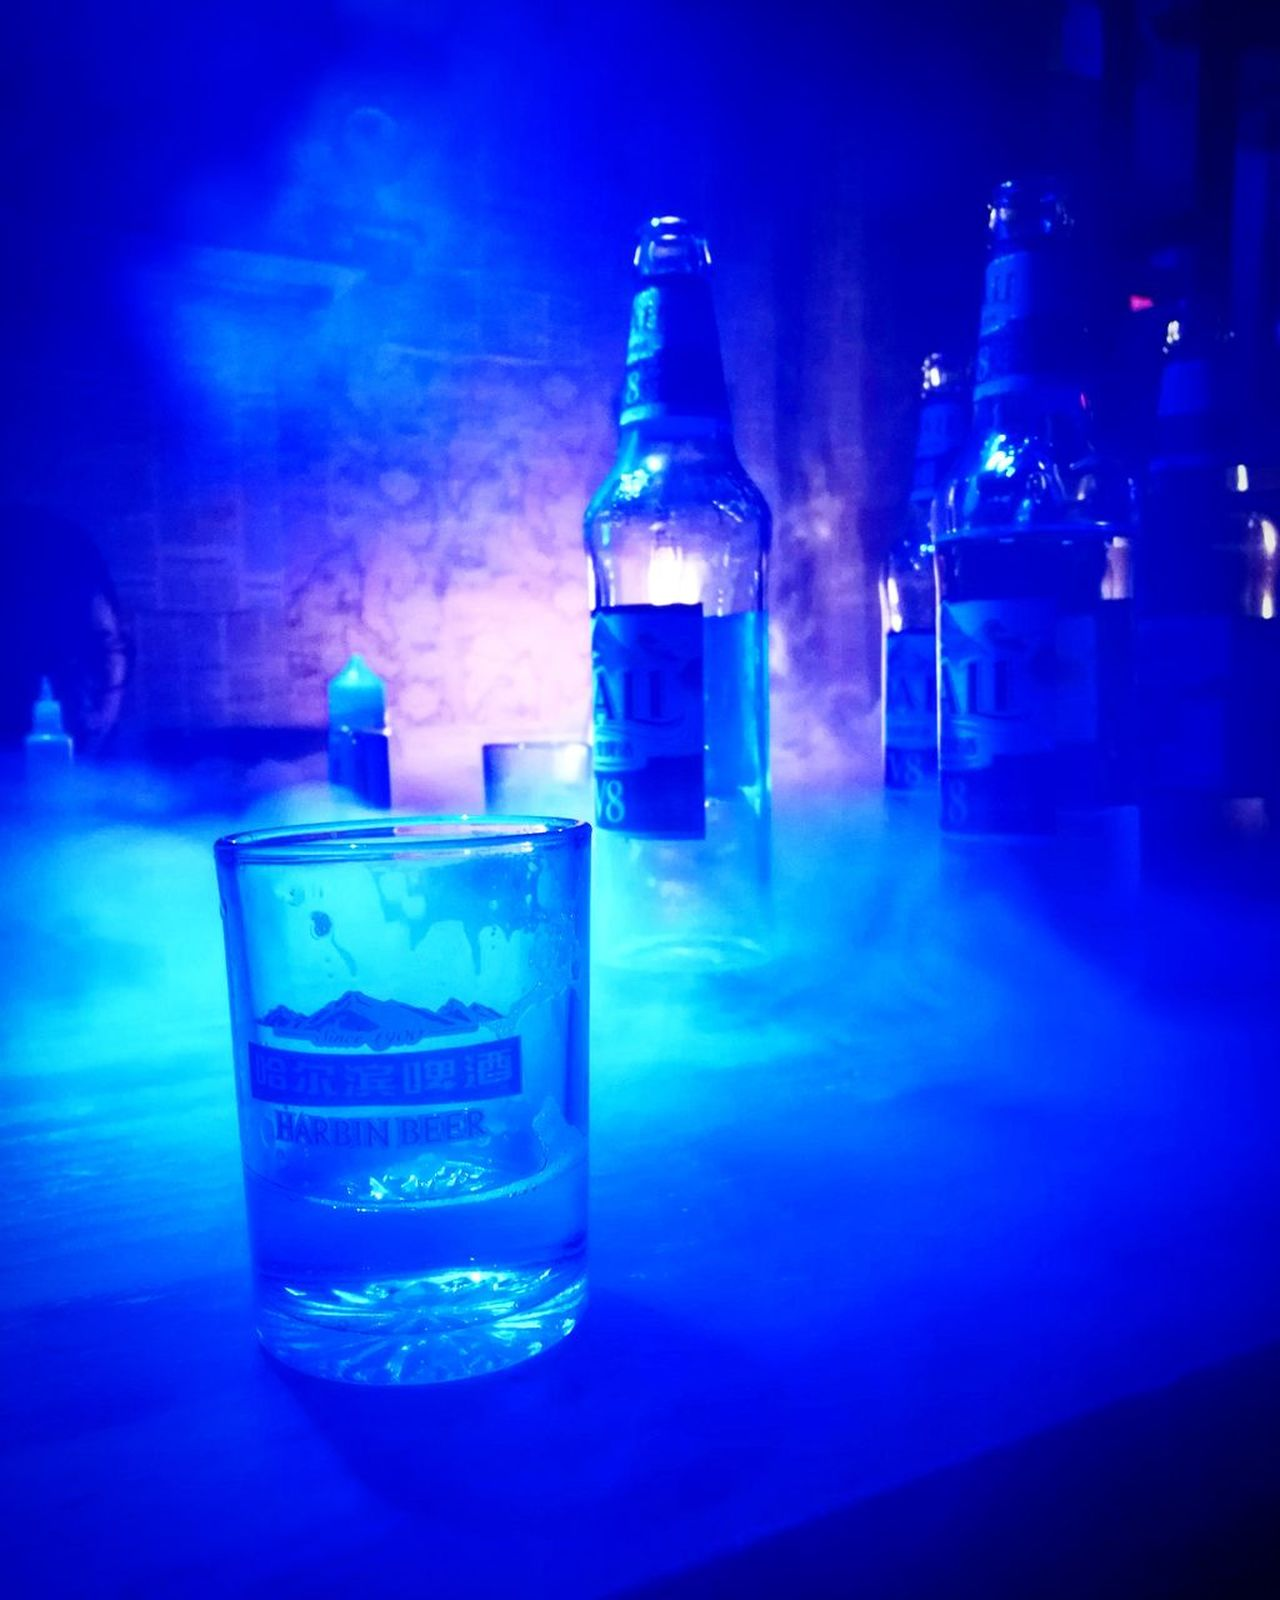 drink Blue Studio Shot No People Water Cold Drink Motion Drinking Glass Drink Drinking Water Beaker Innovation